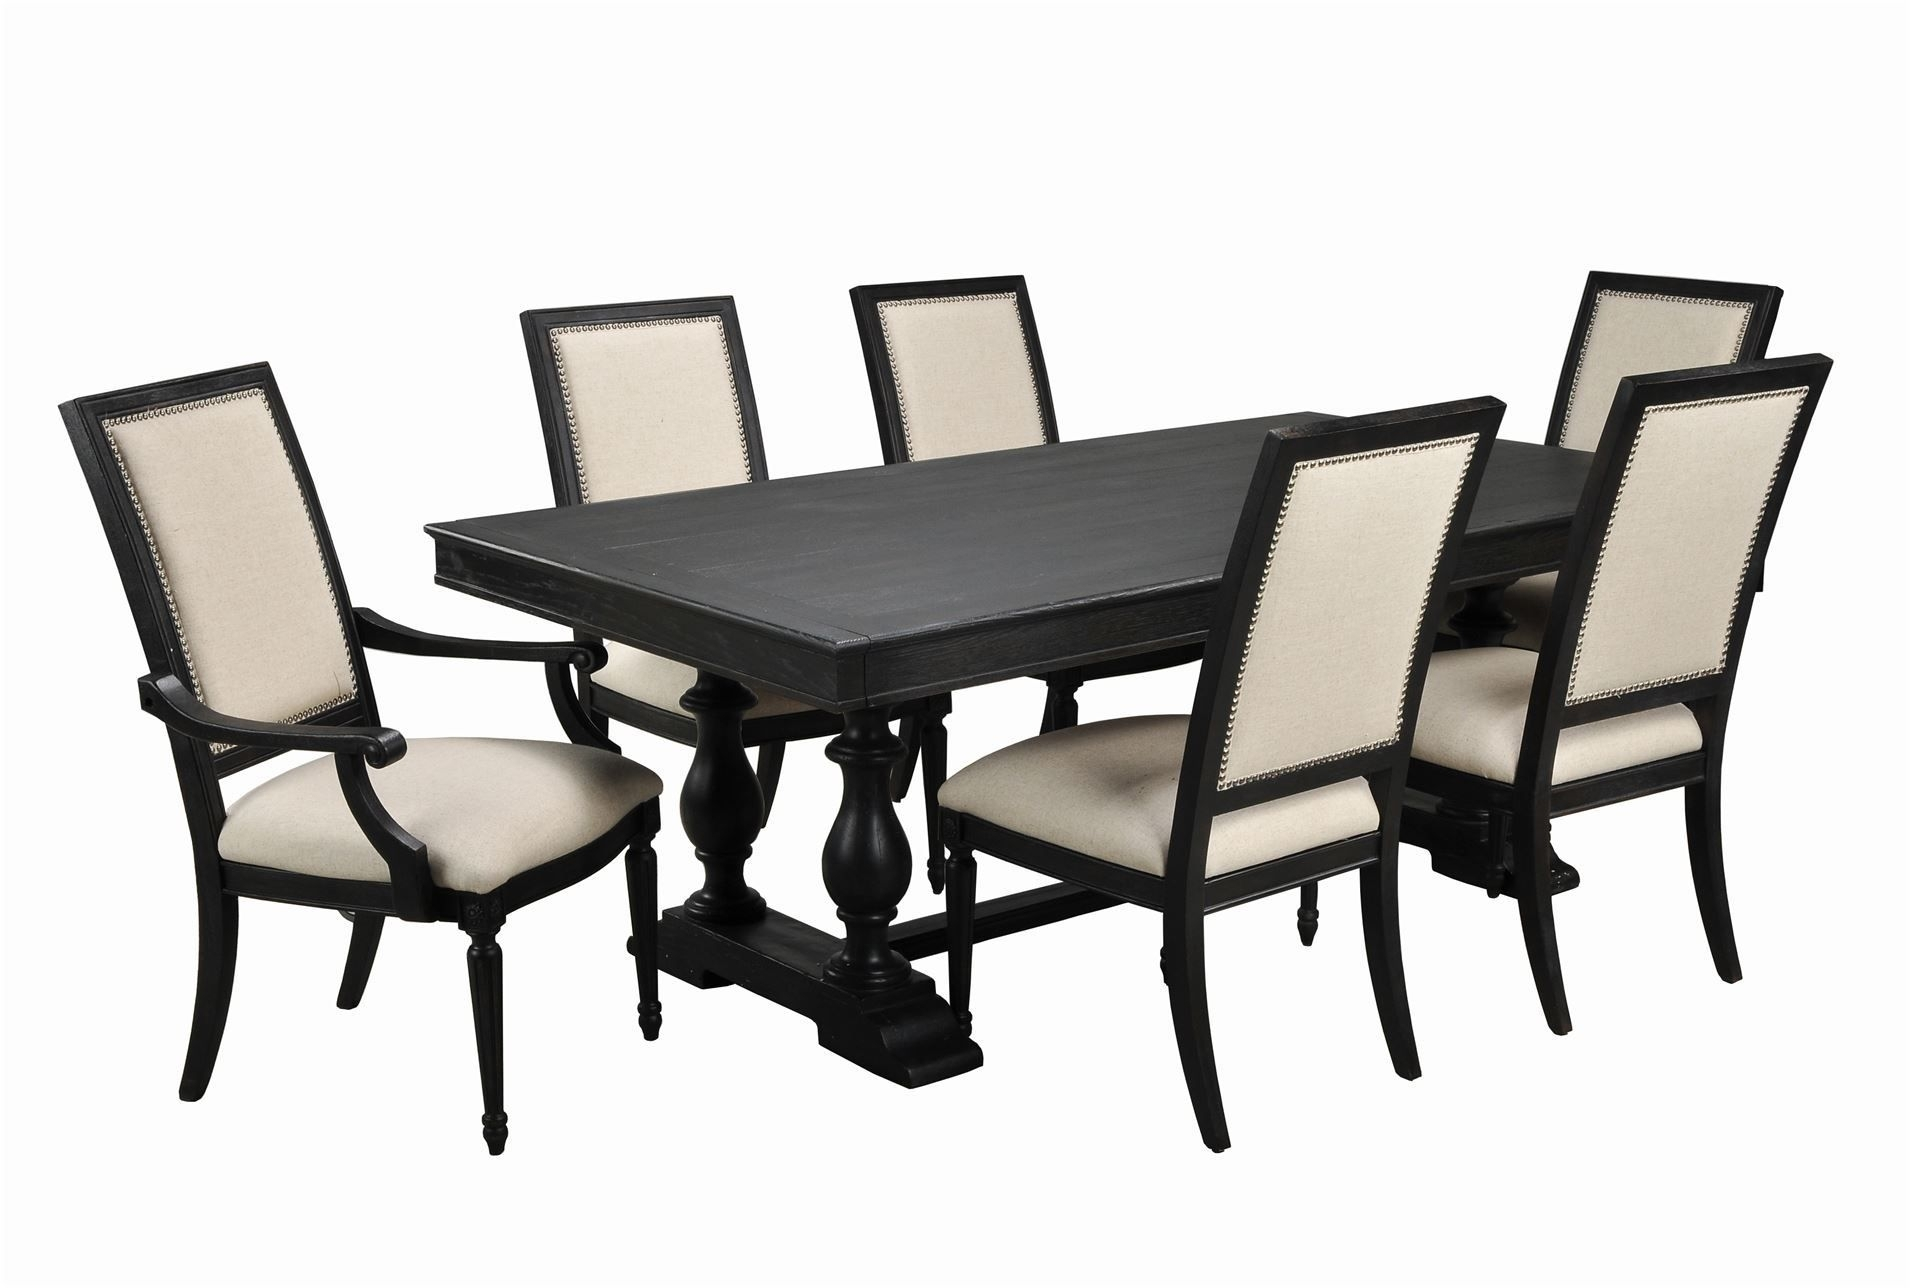 Chapleau 7 Piece Extension Dining Set | Decor & More | Pinterest Intended For Most Recently Released Chapleau Ii Extension Dining Tables (View 6 of 20)